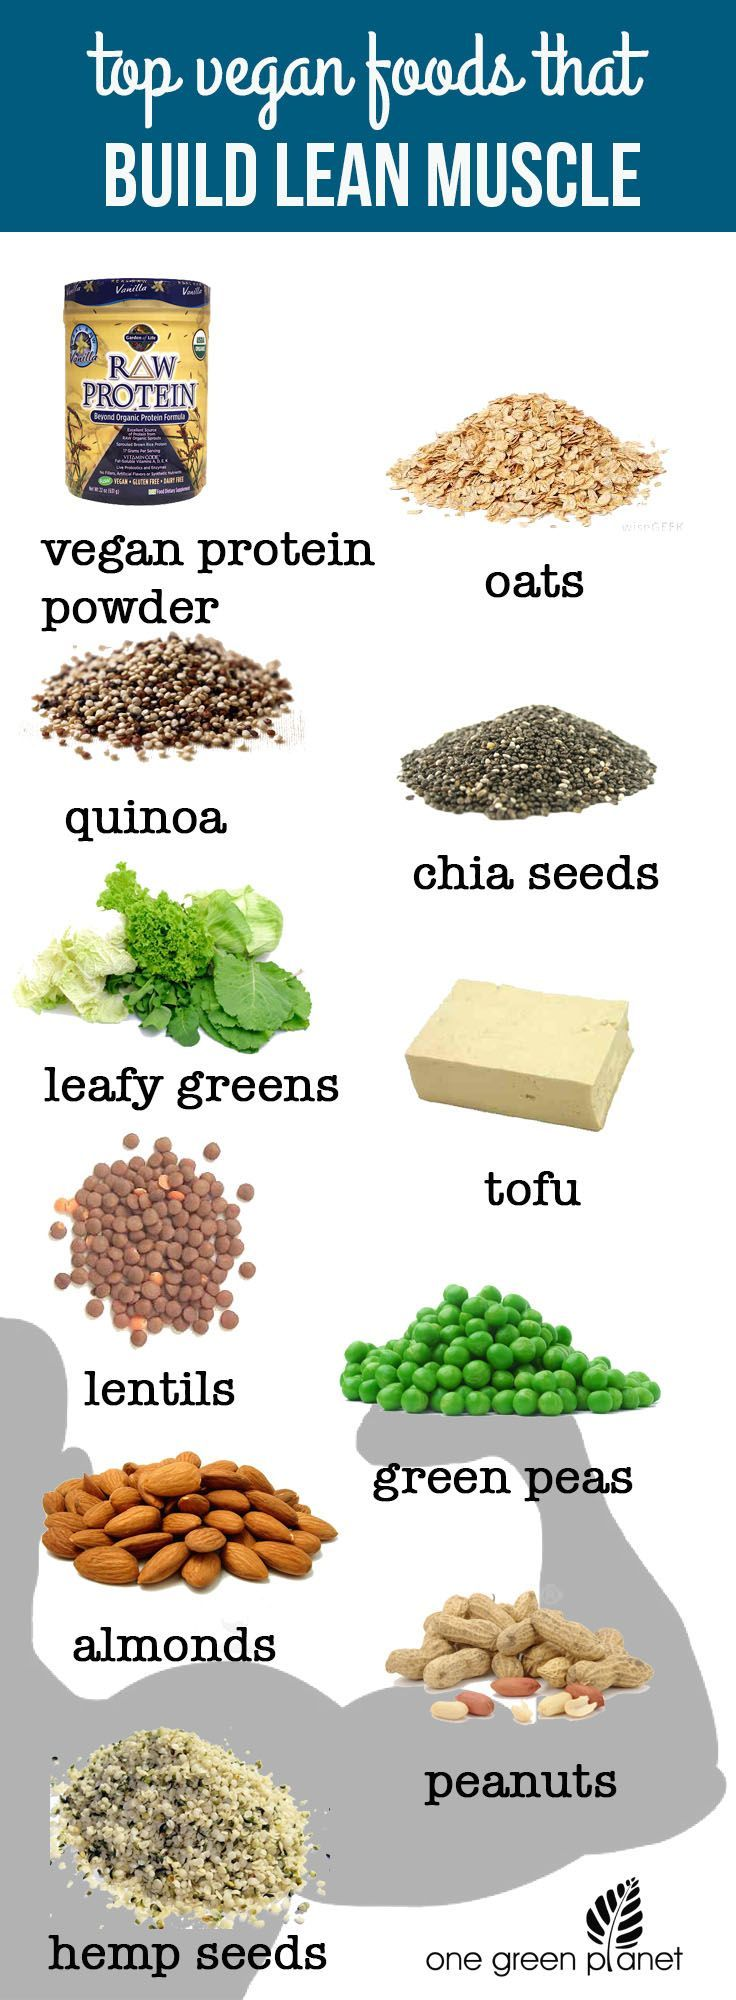 Top Vegan Foods That Build Lean Muscle http://onegr.pl/1rRlZJO #vegan #plantpowered #plantstrong